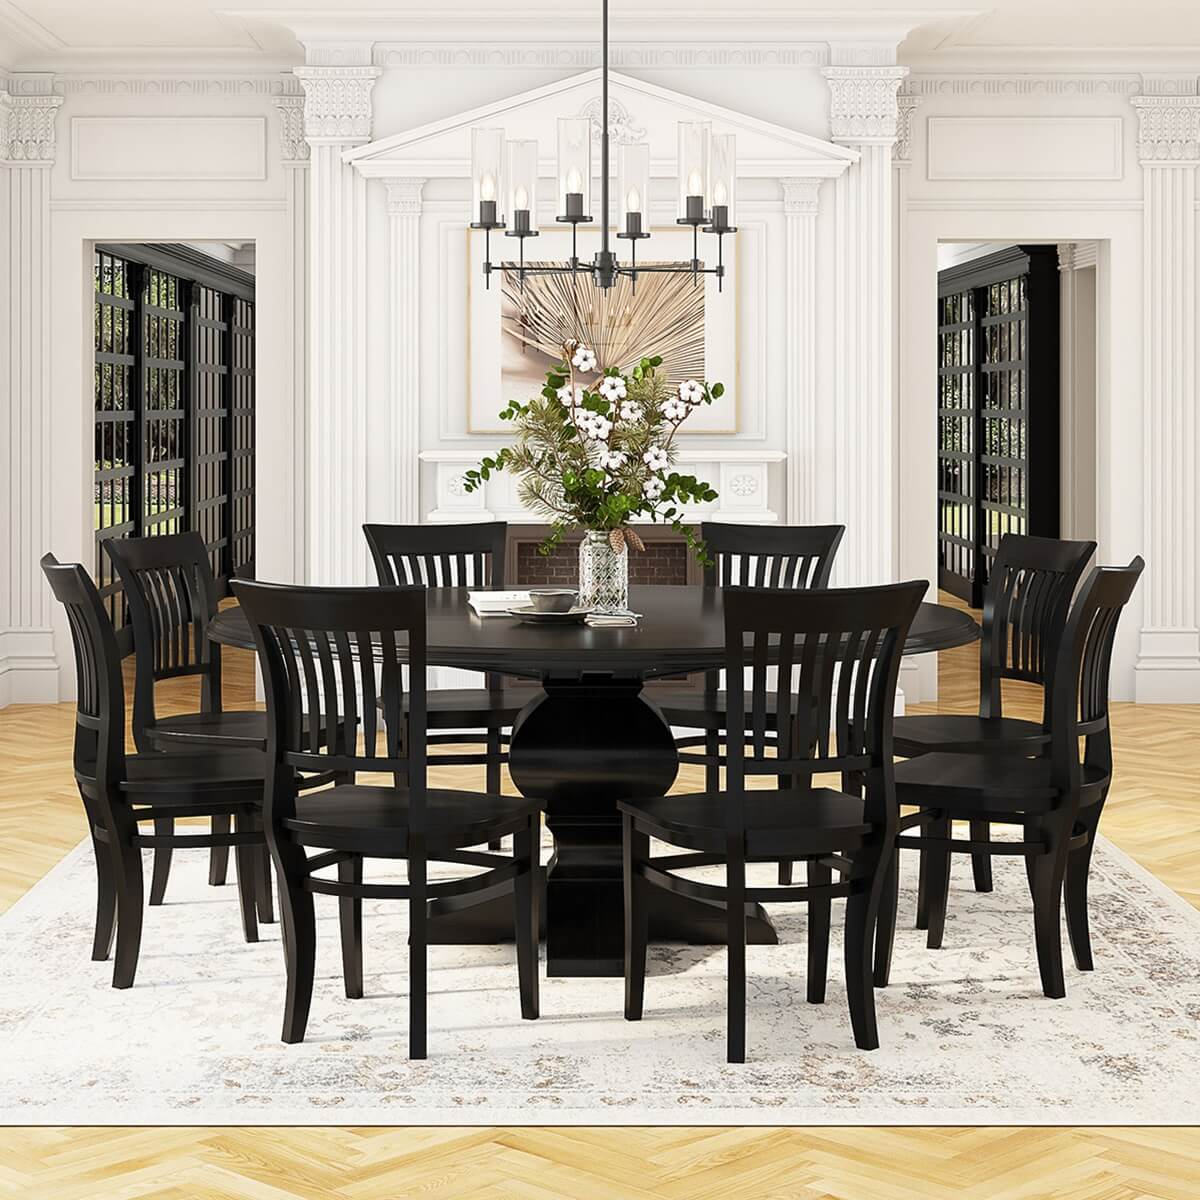 sierra nevada large round rustic solid wood dining - Long Wood Dining Table